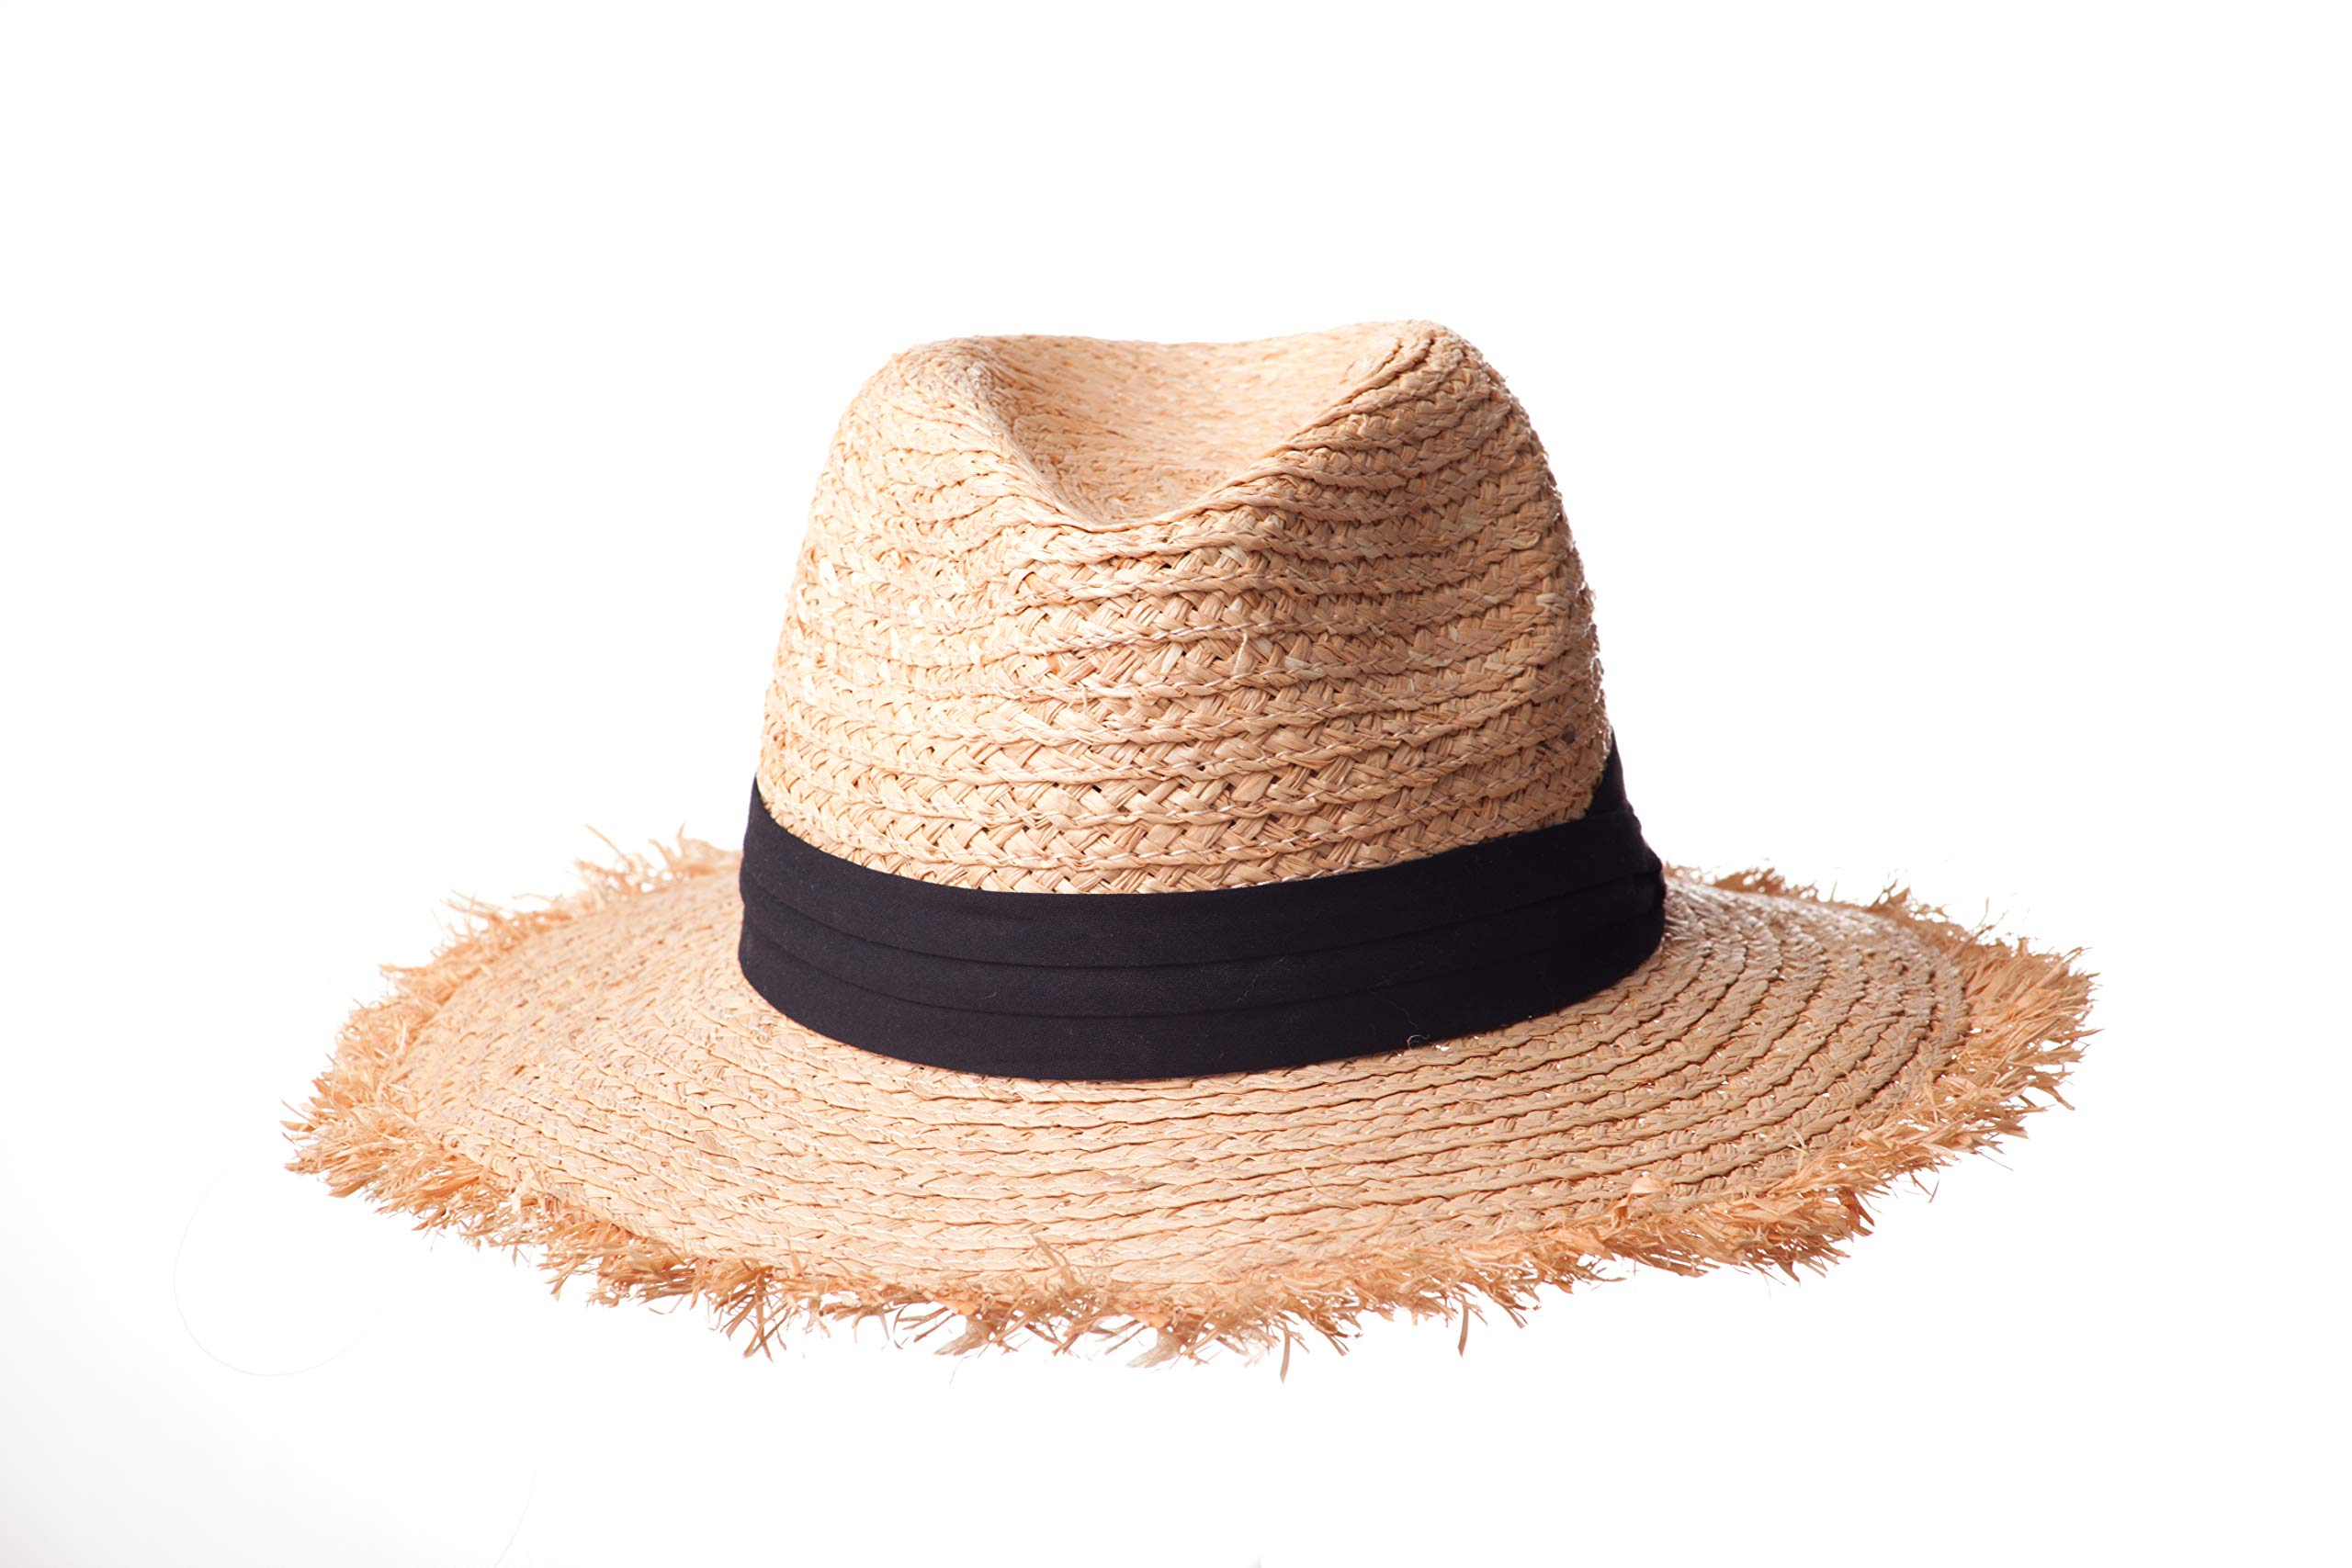 CATA, Hats Raffia Straw Panama Hat for Women, Classic Retro Style, Great for Travel, Adjustable Size, and Stylish Sun Protection by Cata straw hats